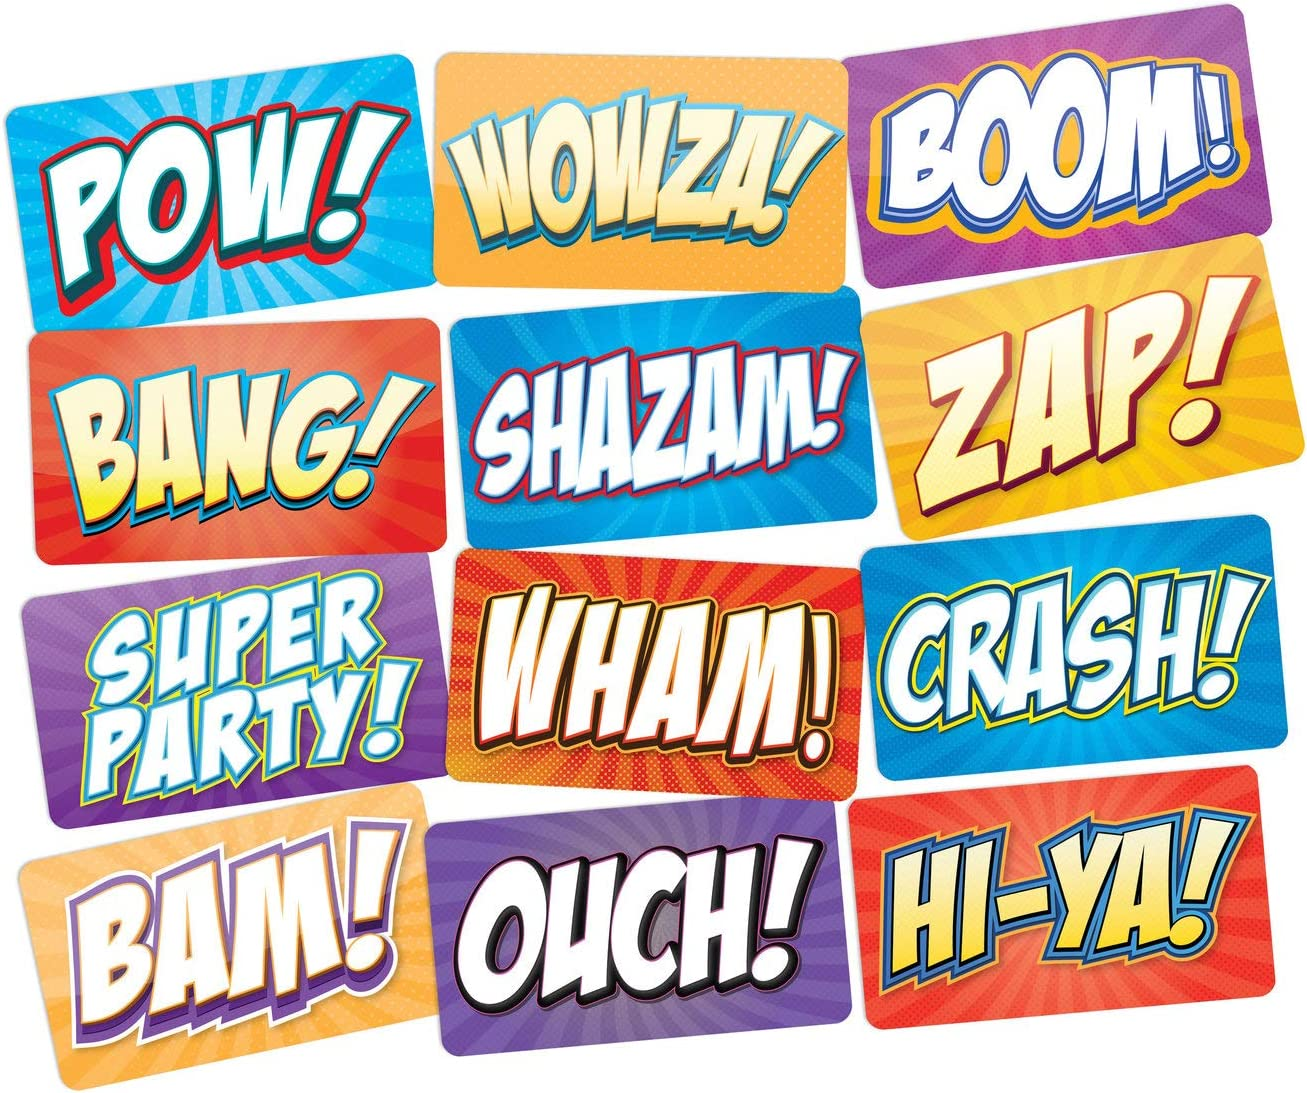 Superhero Party Photo Booth Props Signs 6pc Double Sided Props Set BAM POW ZAP WHAM Prop Signs for Action Comic Theme Birthday Supplies